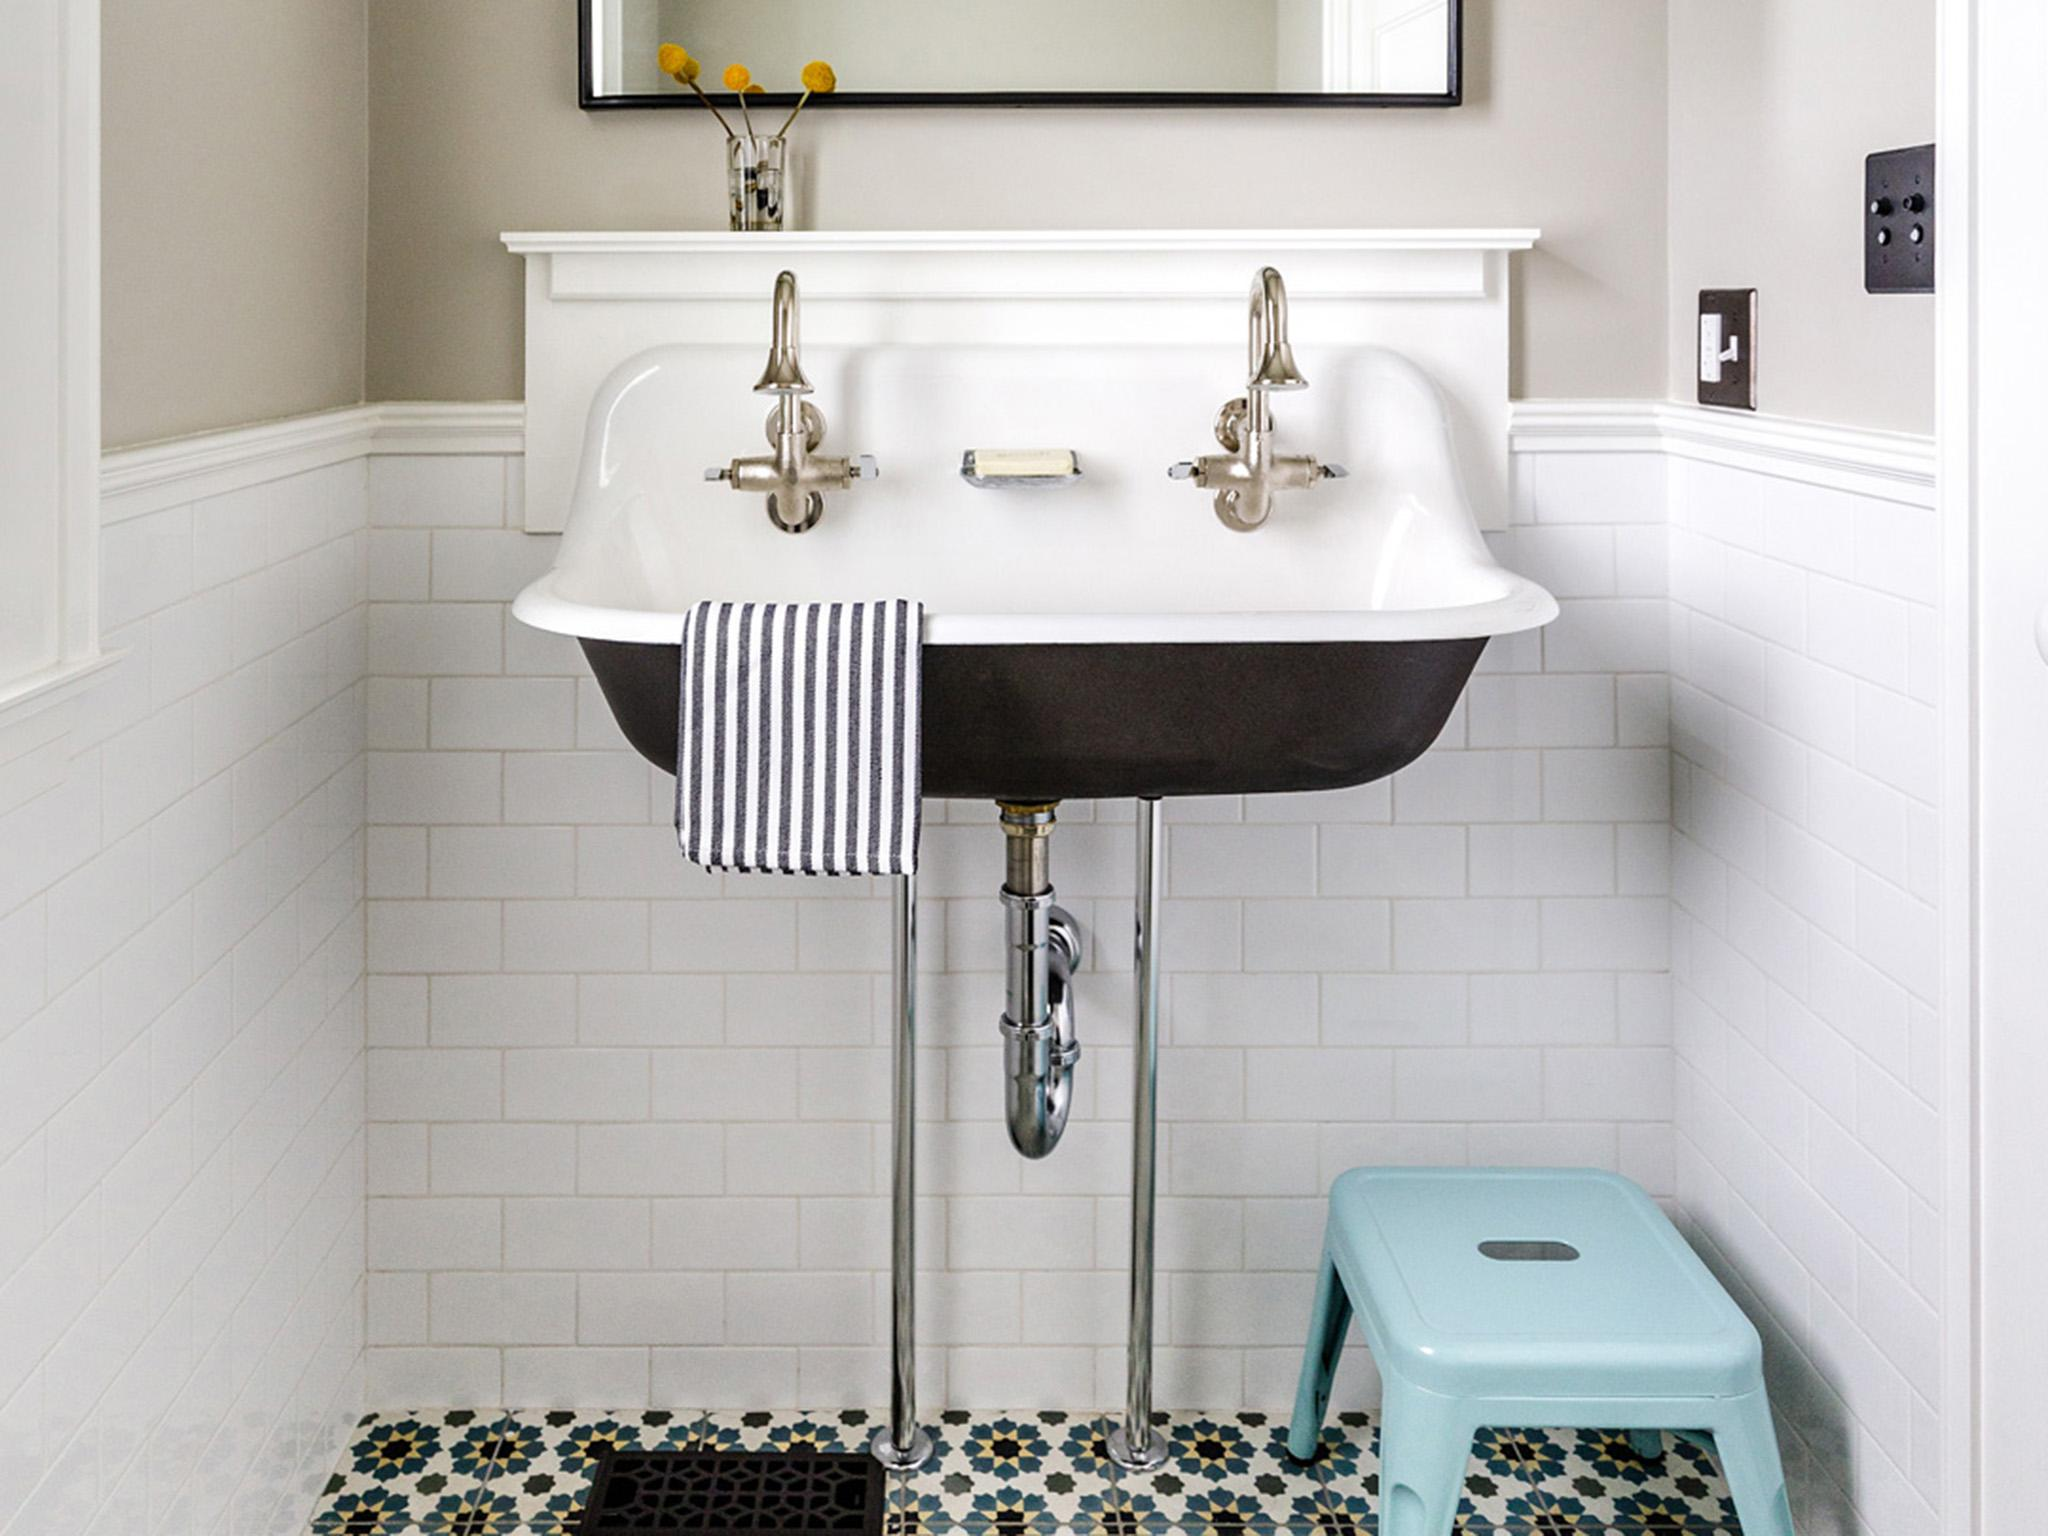 Ten home design trends to expect in 2018 | The Independent Interior Design Gray Bathroom Tile Ideas Html on gray glass subway tile backsplash, gray kitchen design ideas, gray interior wall painting ideas, gray bathroom floor tile, gray hardwood floors design ideas, gray bathroom interior design, gray tiled bathrooms, gray bathroom vanity design ideas, gray bathroom tile shower, gray bathroom decorating ideas, gray bathroom color ideas, gray subway tile bathroom, gray bathroom wall ideas,